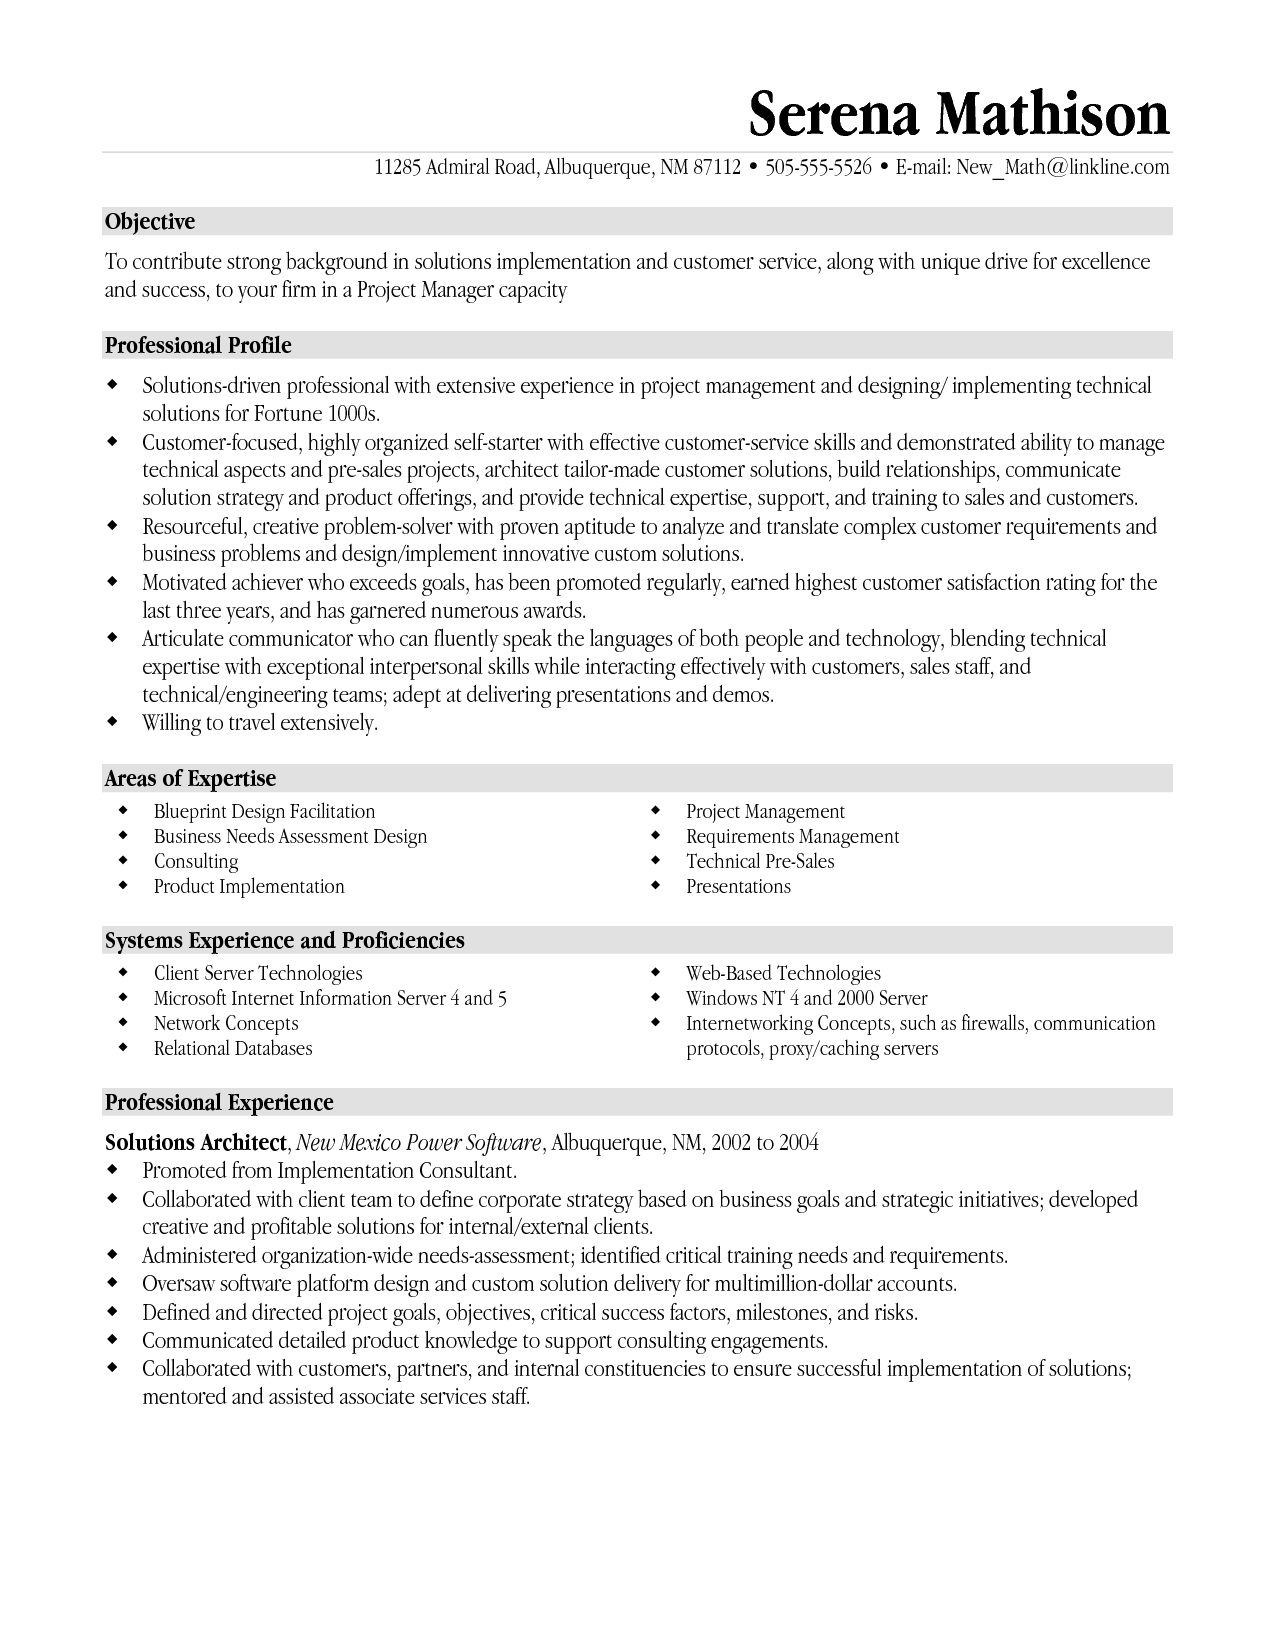 resume samples for project manager project management resume samples free project management resume - Sample Resume Pre Sales Manager